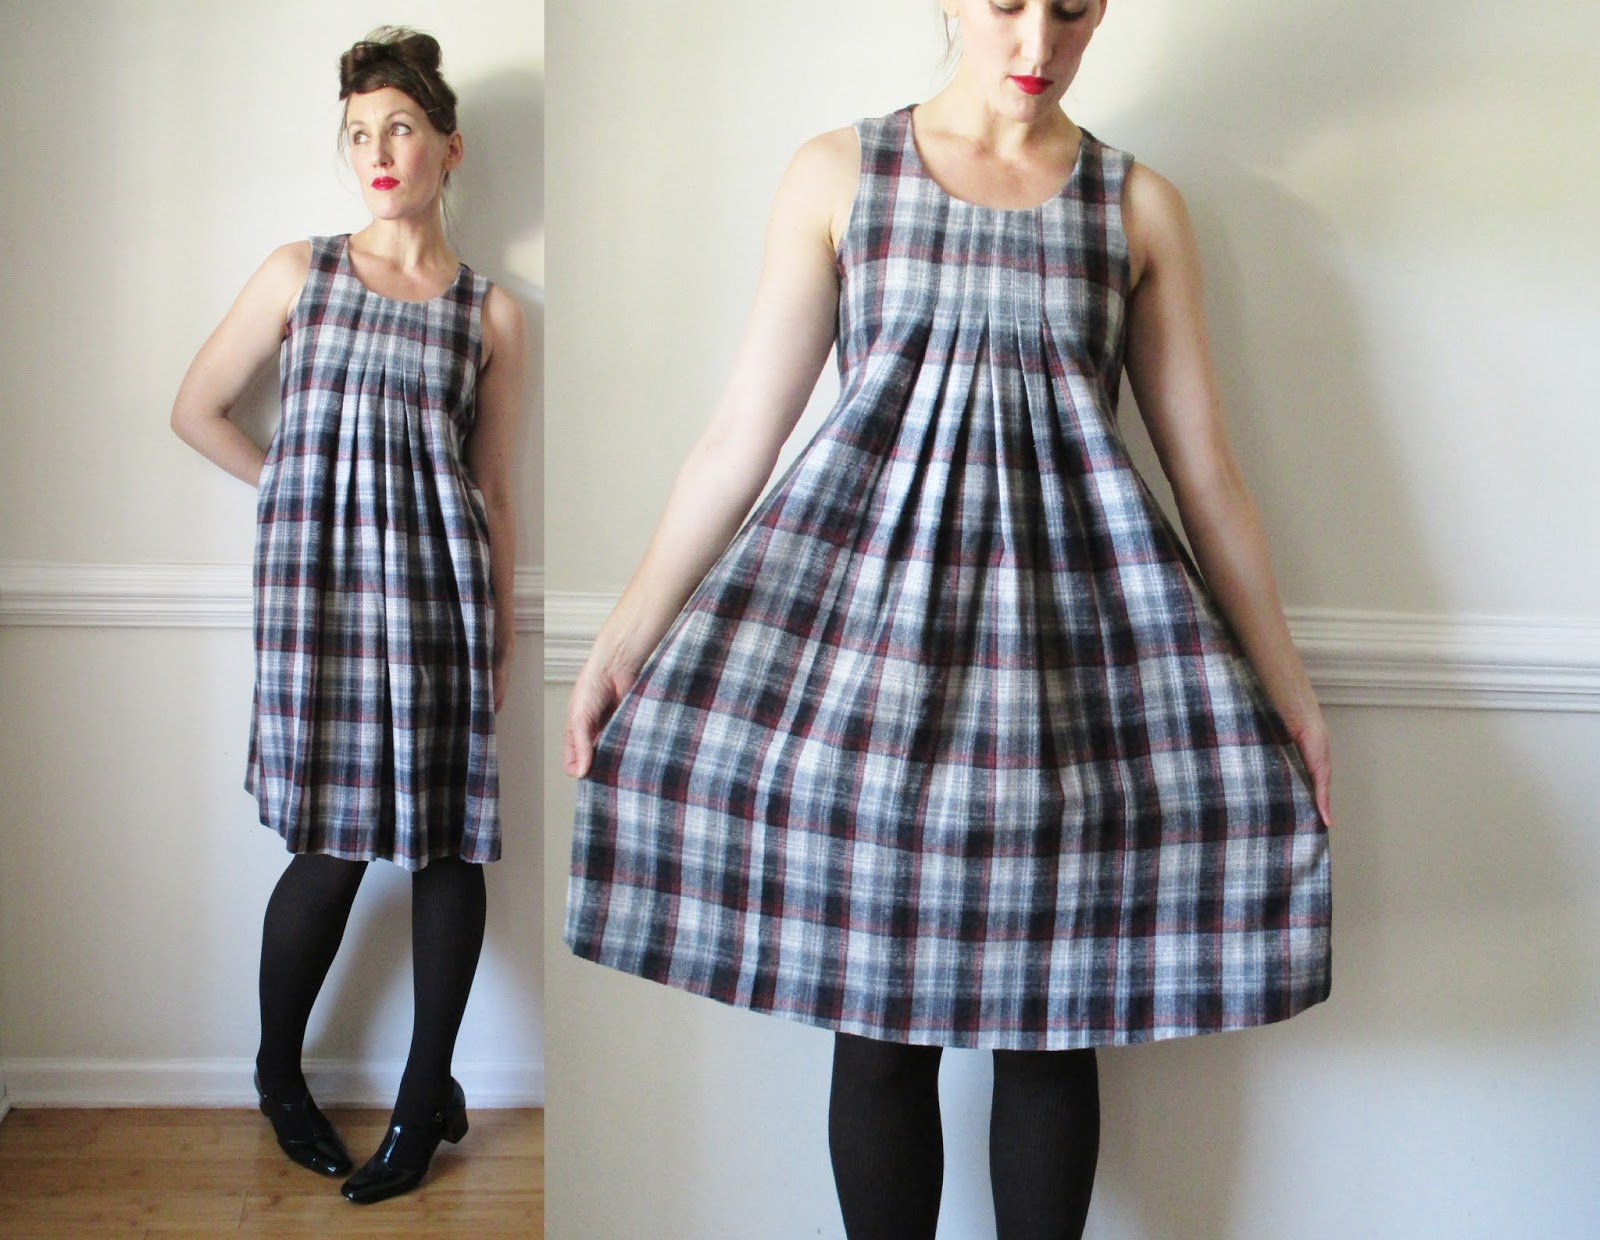 https://www.etsy.com/listing/208862054/60s-dress-mod-1960s-plaid-babydoll?ref=listing-shop-header-1